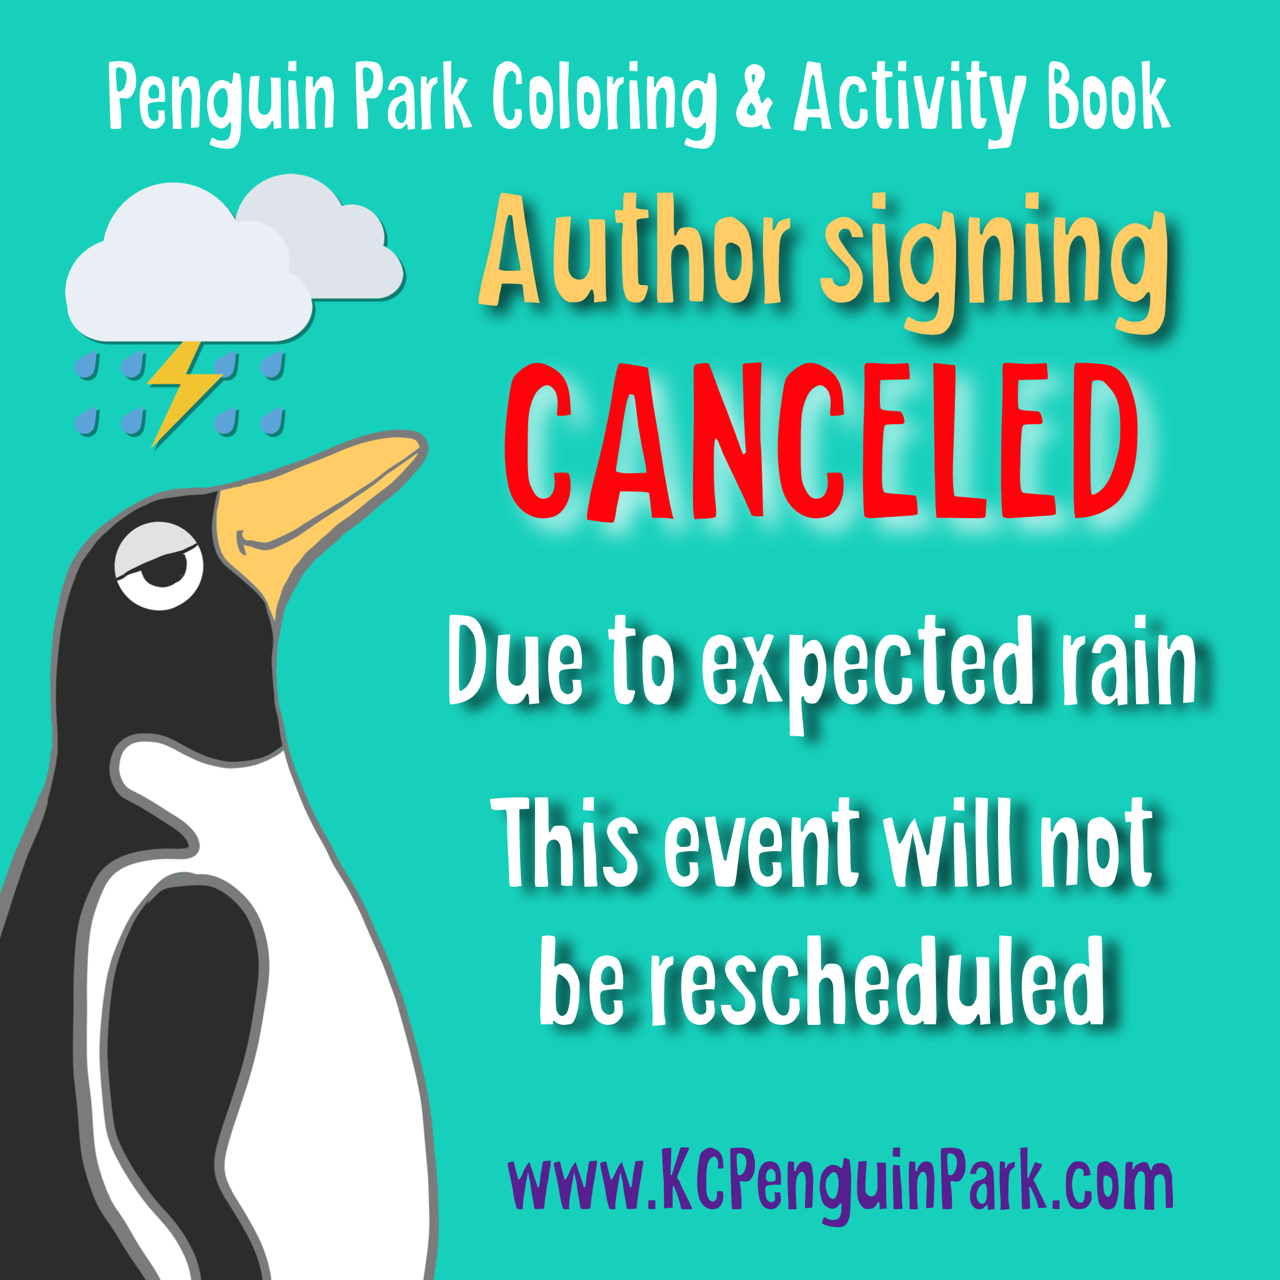 Penguin park coloring & activity book